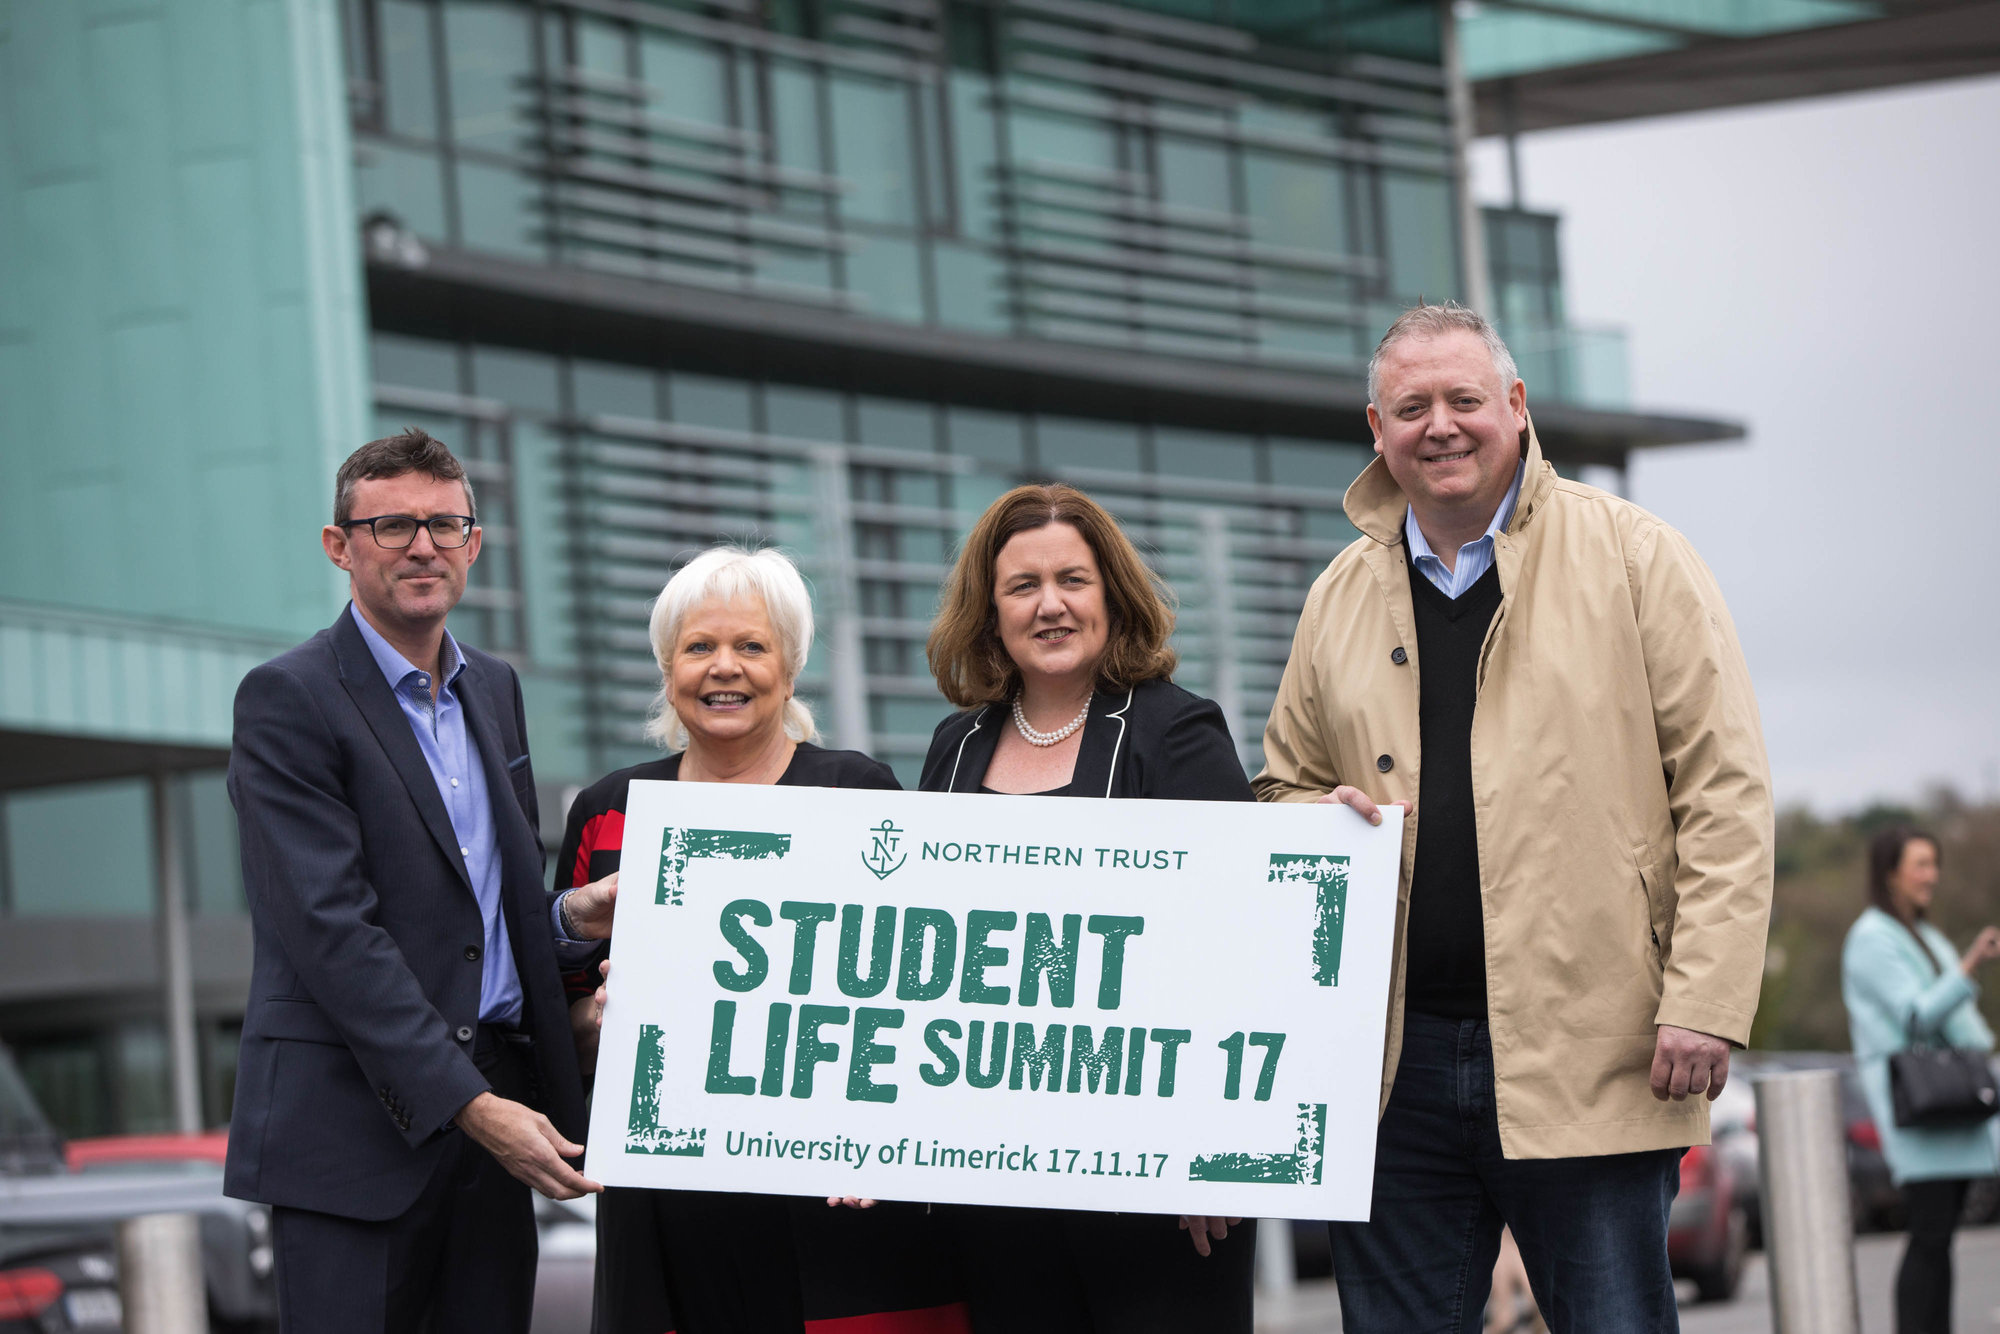 StudentLife Summit